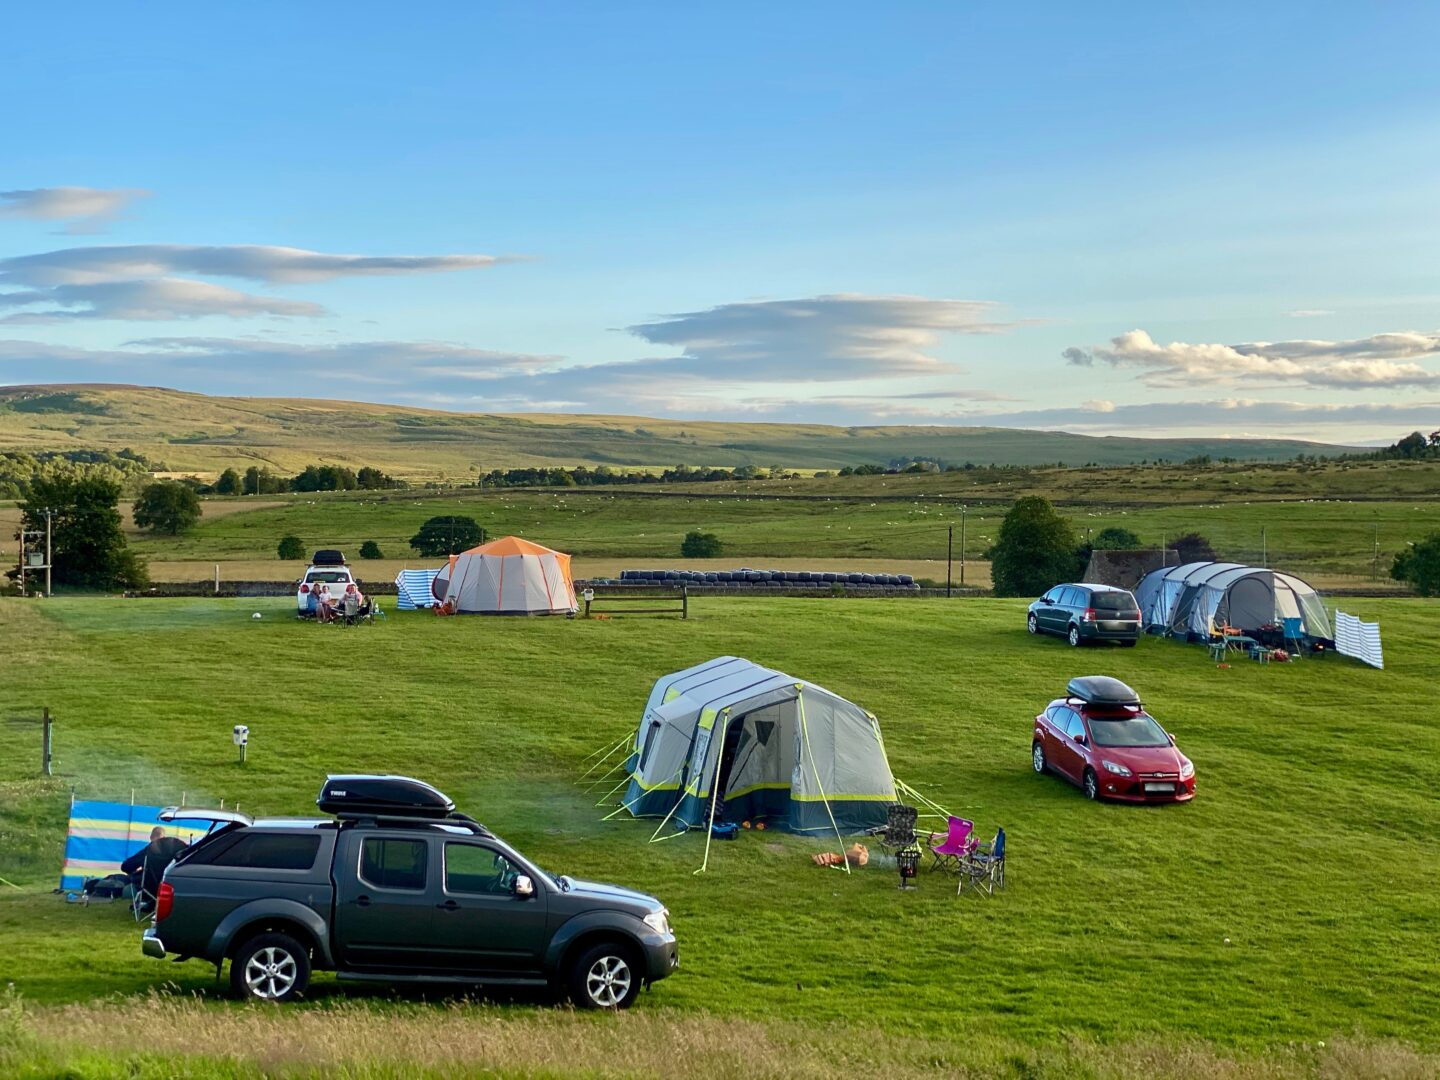 A campsite with 3 cars and tents